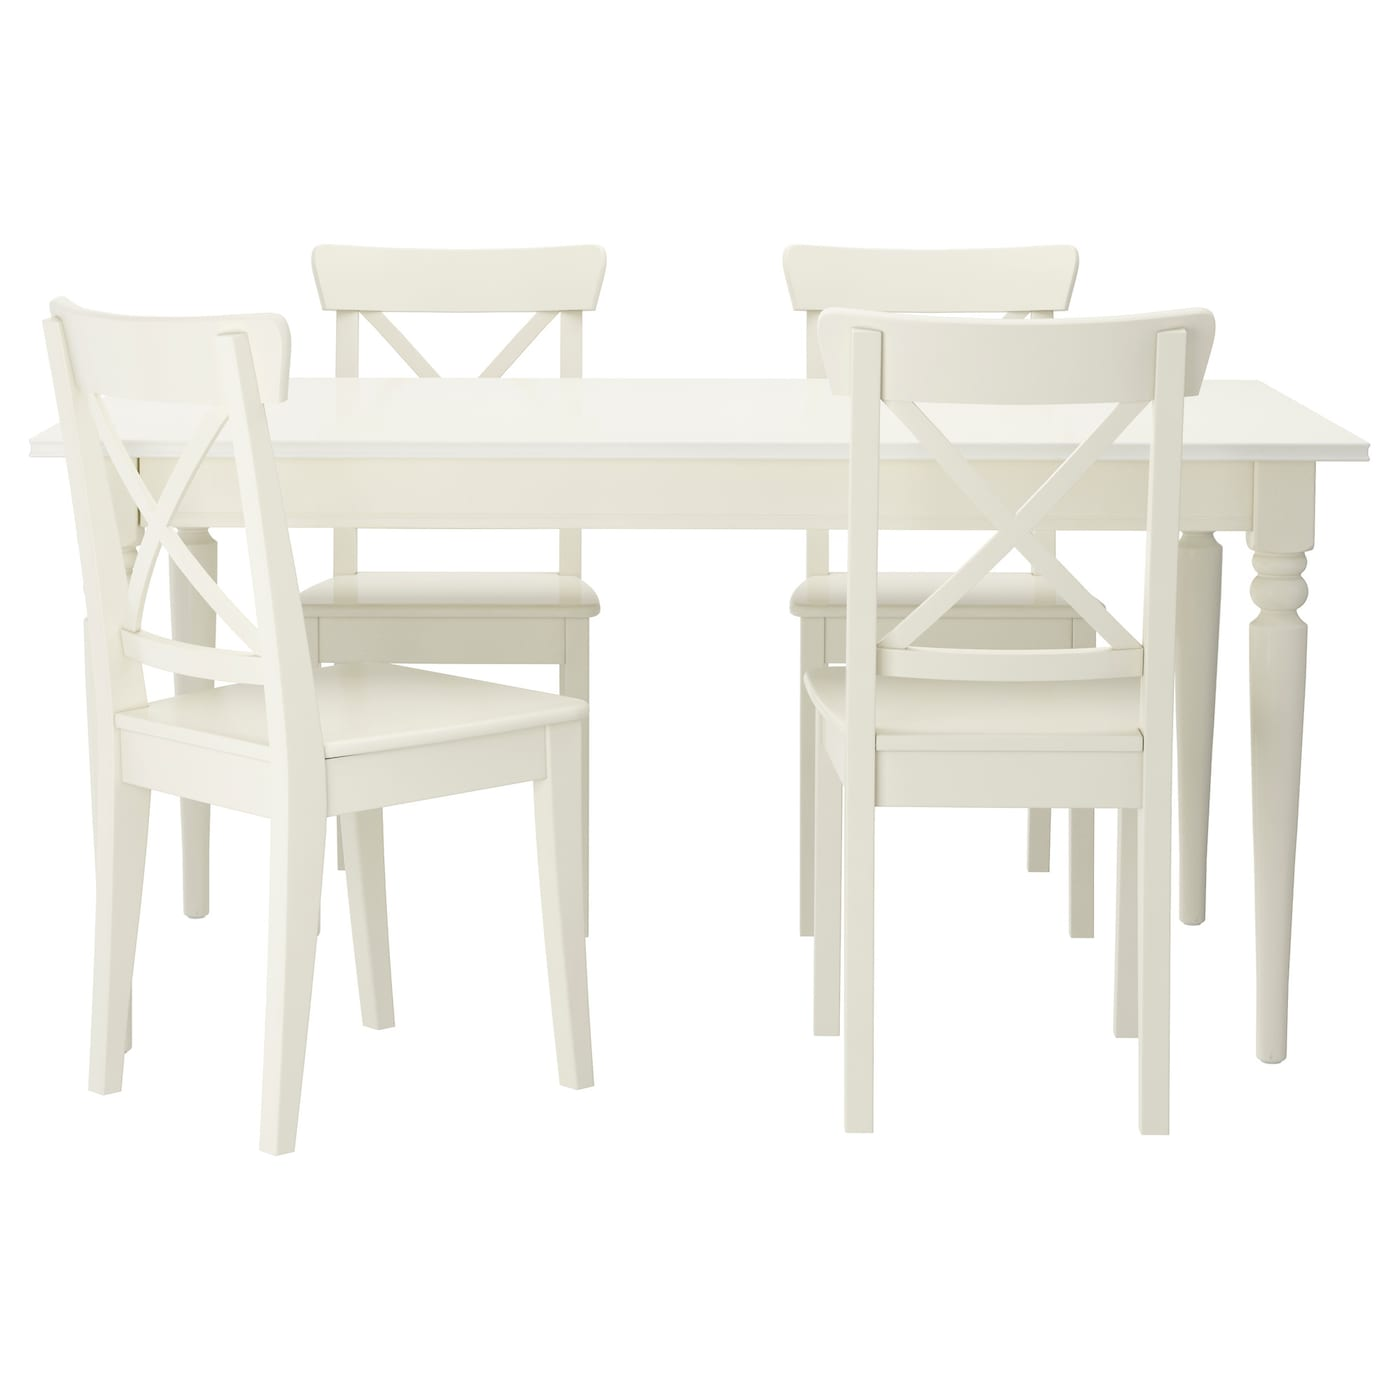 INGATORP INGOLF Table and 4 chairs White 155 cm IKEA